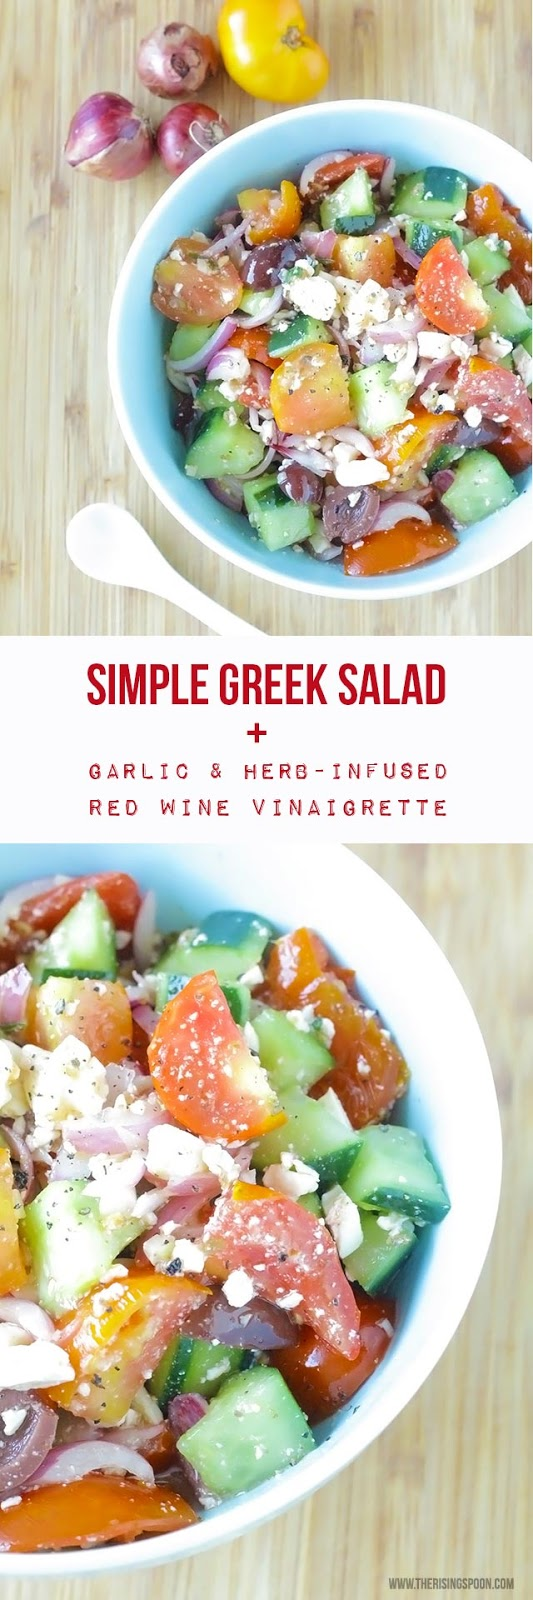 A healthy and refreshing Greek salad with chunky cucumber and tomato, sliced red onion, feta cheese, kalamata olives, and a garlic infused red wine vinaigrette dressing that only takes minutes to make.